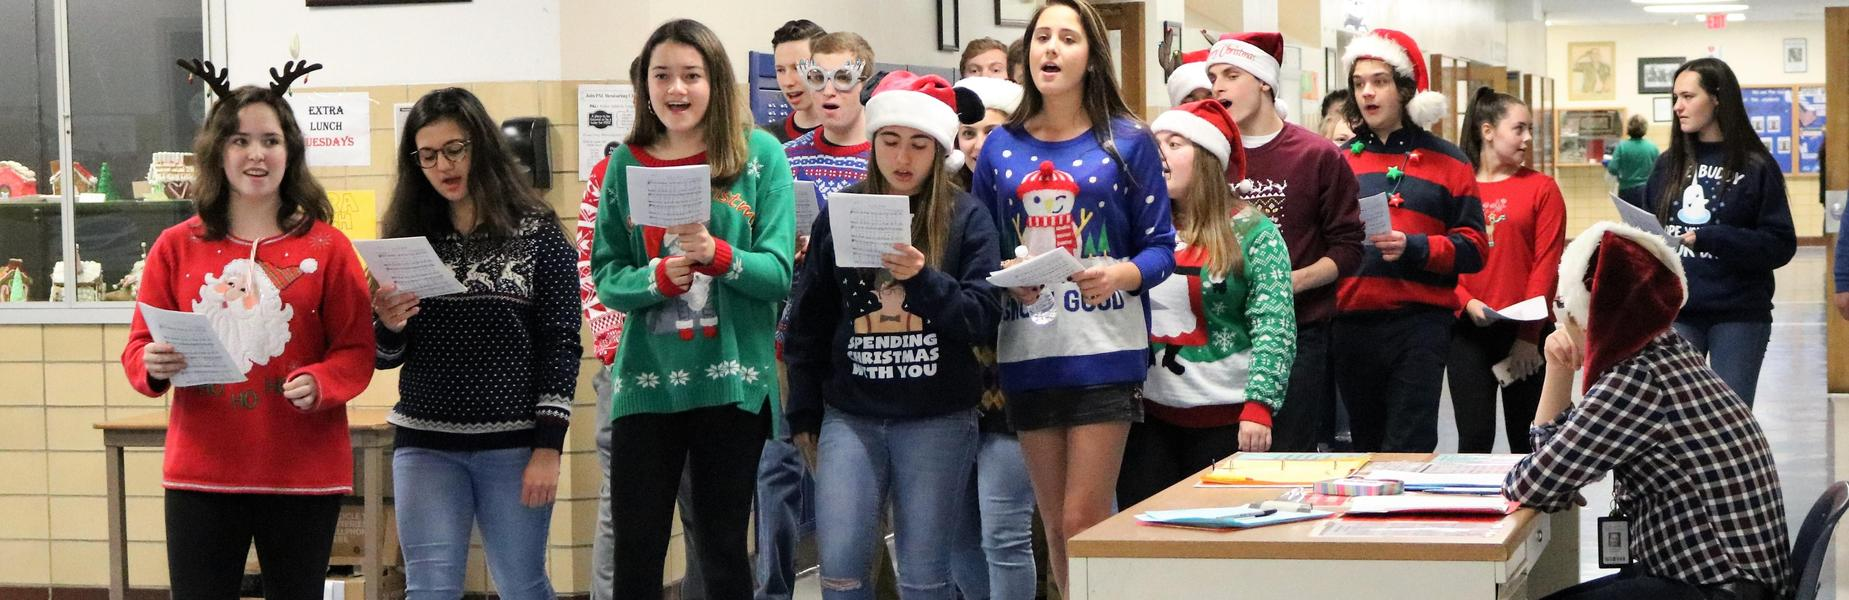 The Westfield High School Chorale takes to the hallway to sing carols to staff and students.